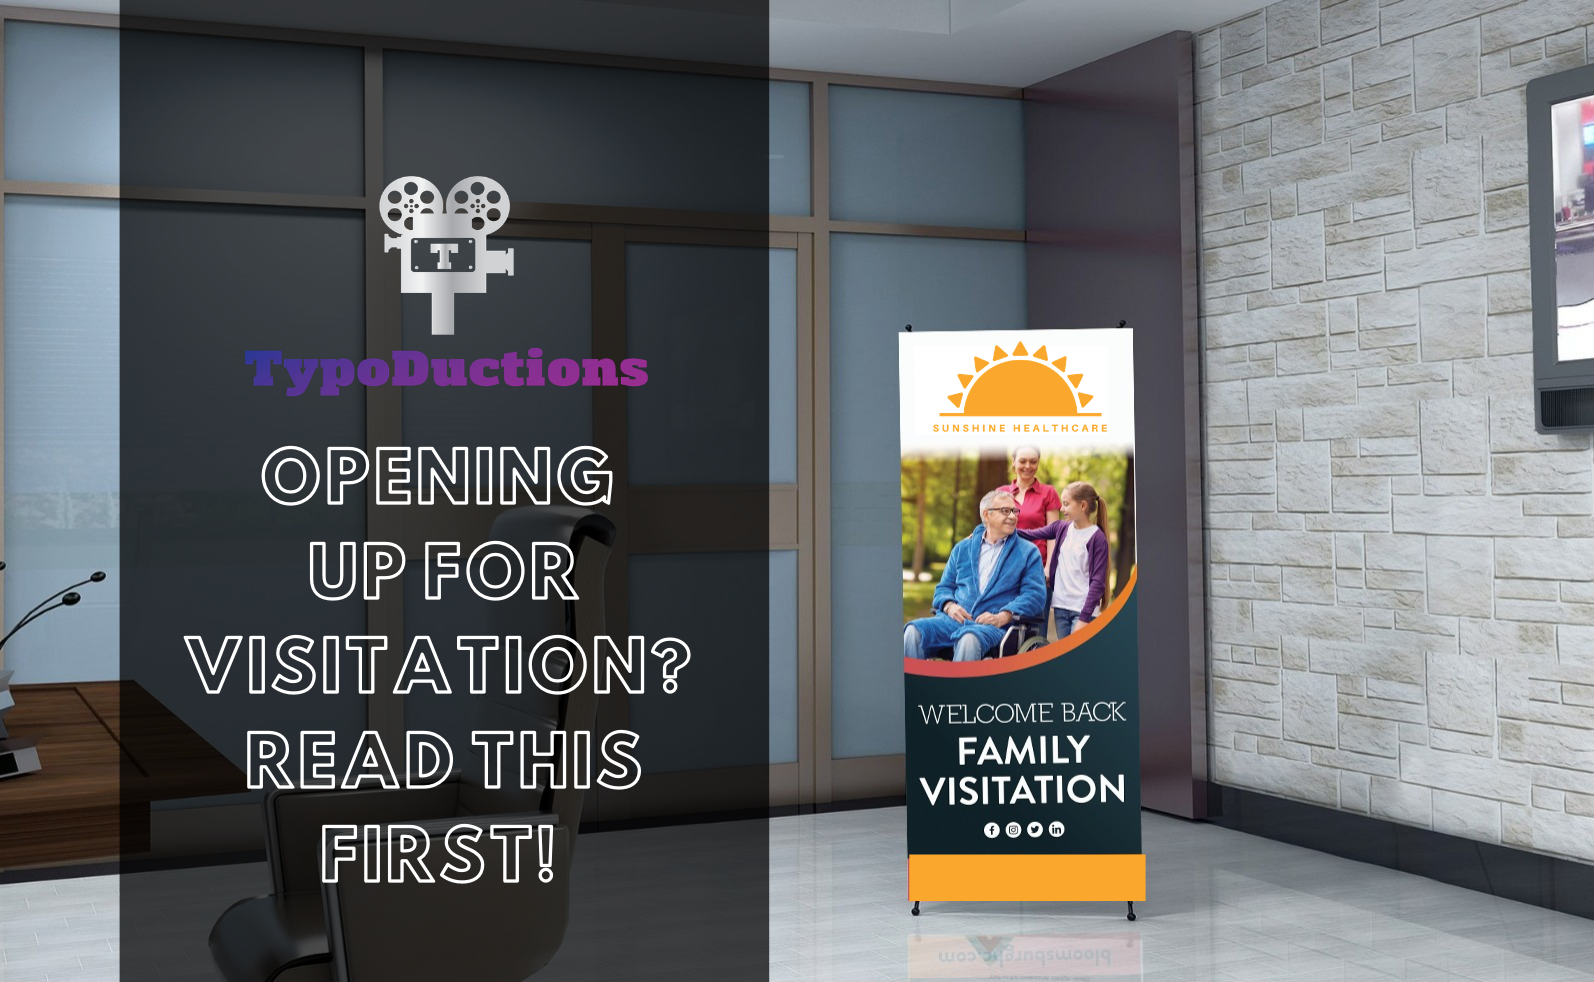 Opening up for visitation? Read this first!